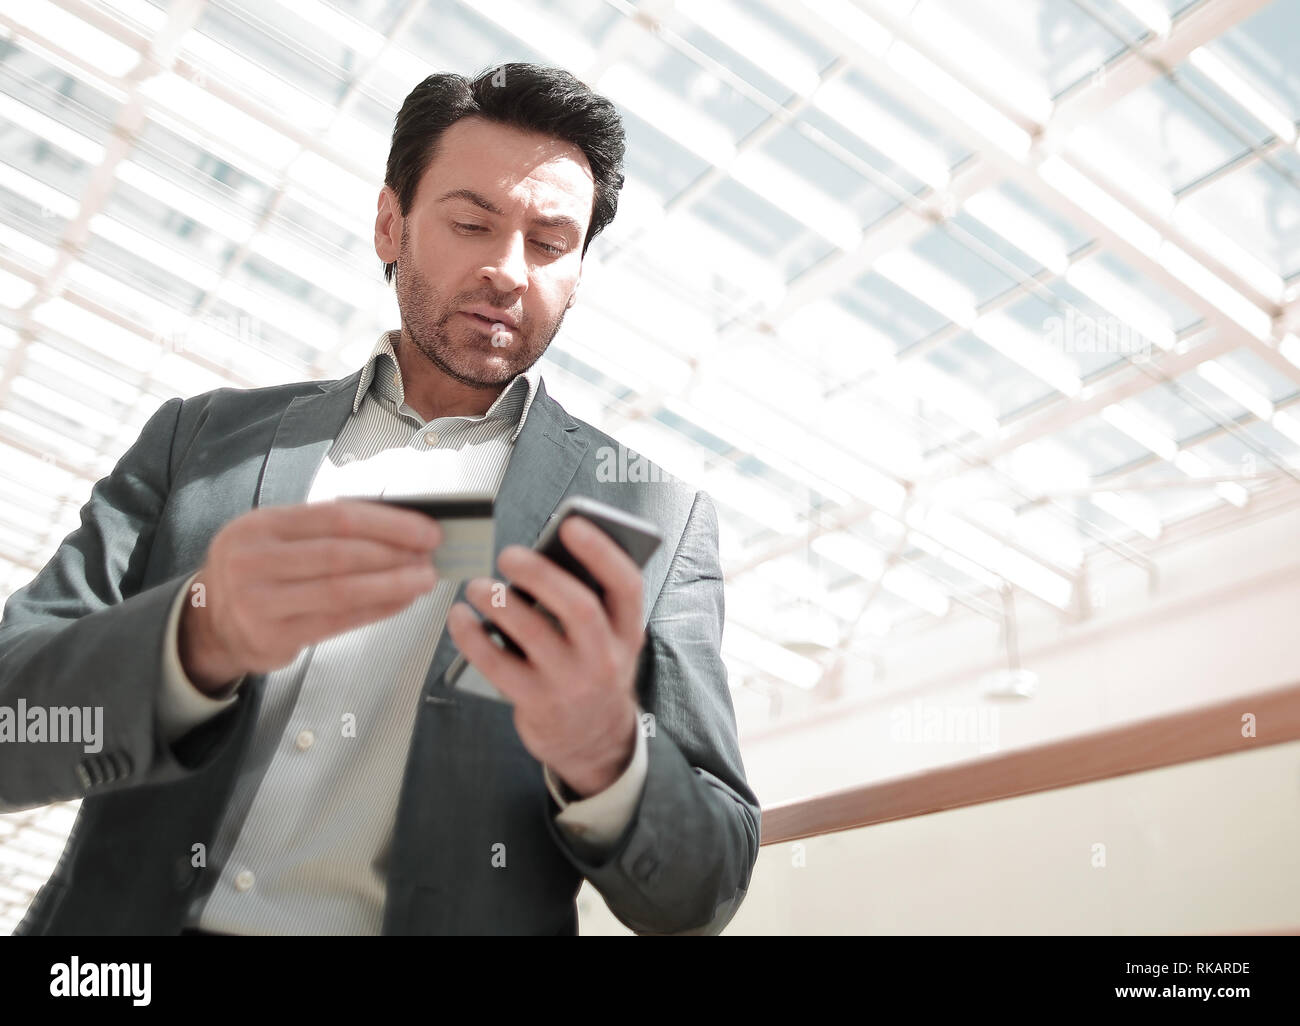 close up.businessman dialing the number on the smartphone. the concept of telephony - Stock Image